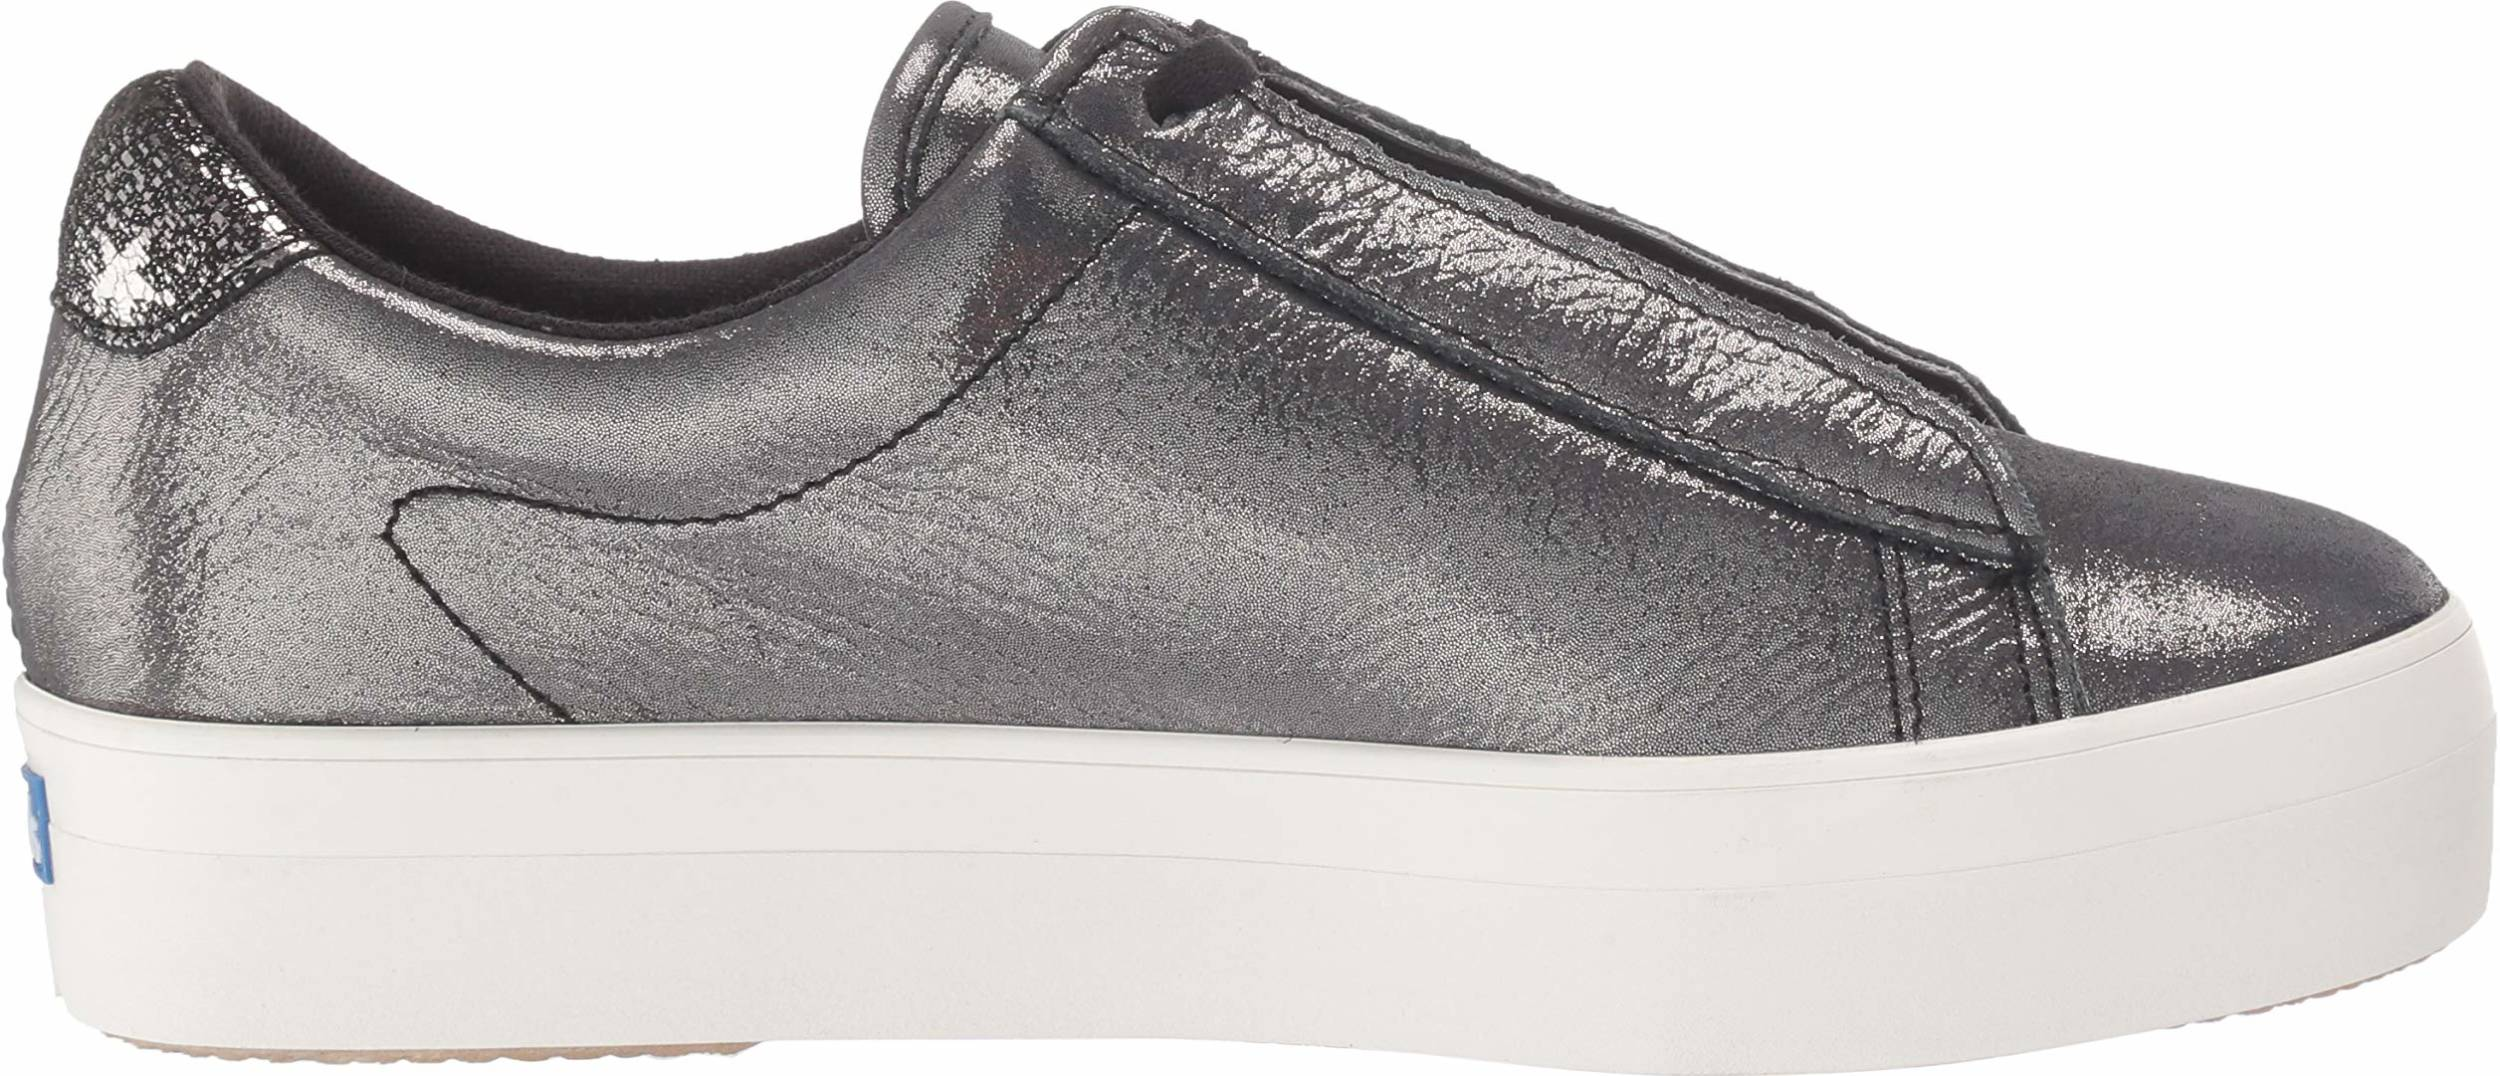 Only $23 + Review of Keds Rise Leather